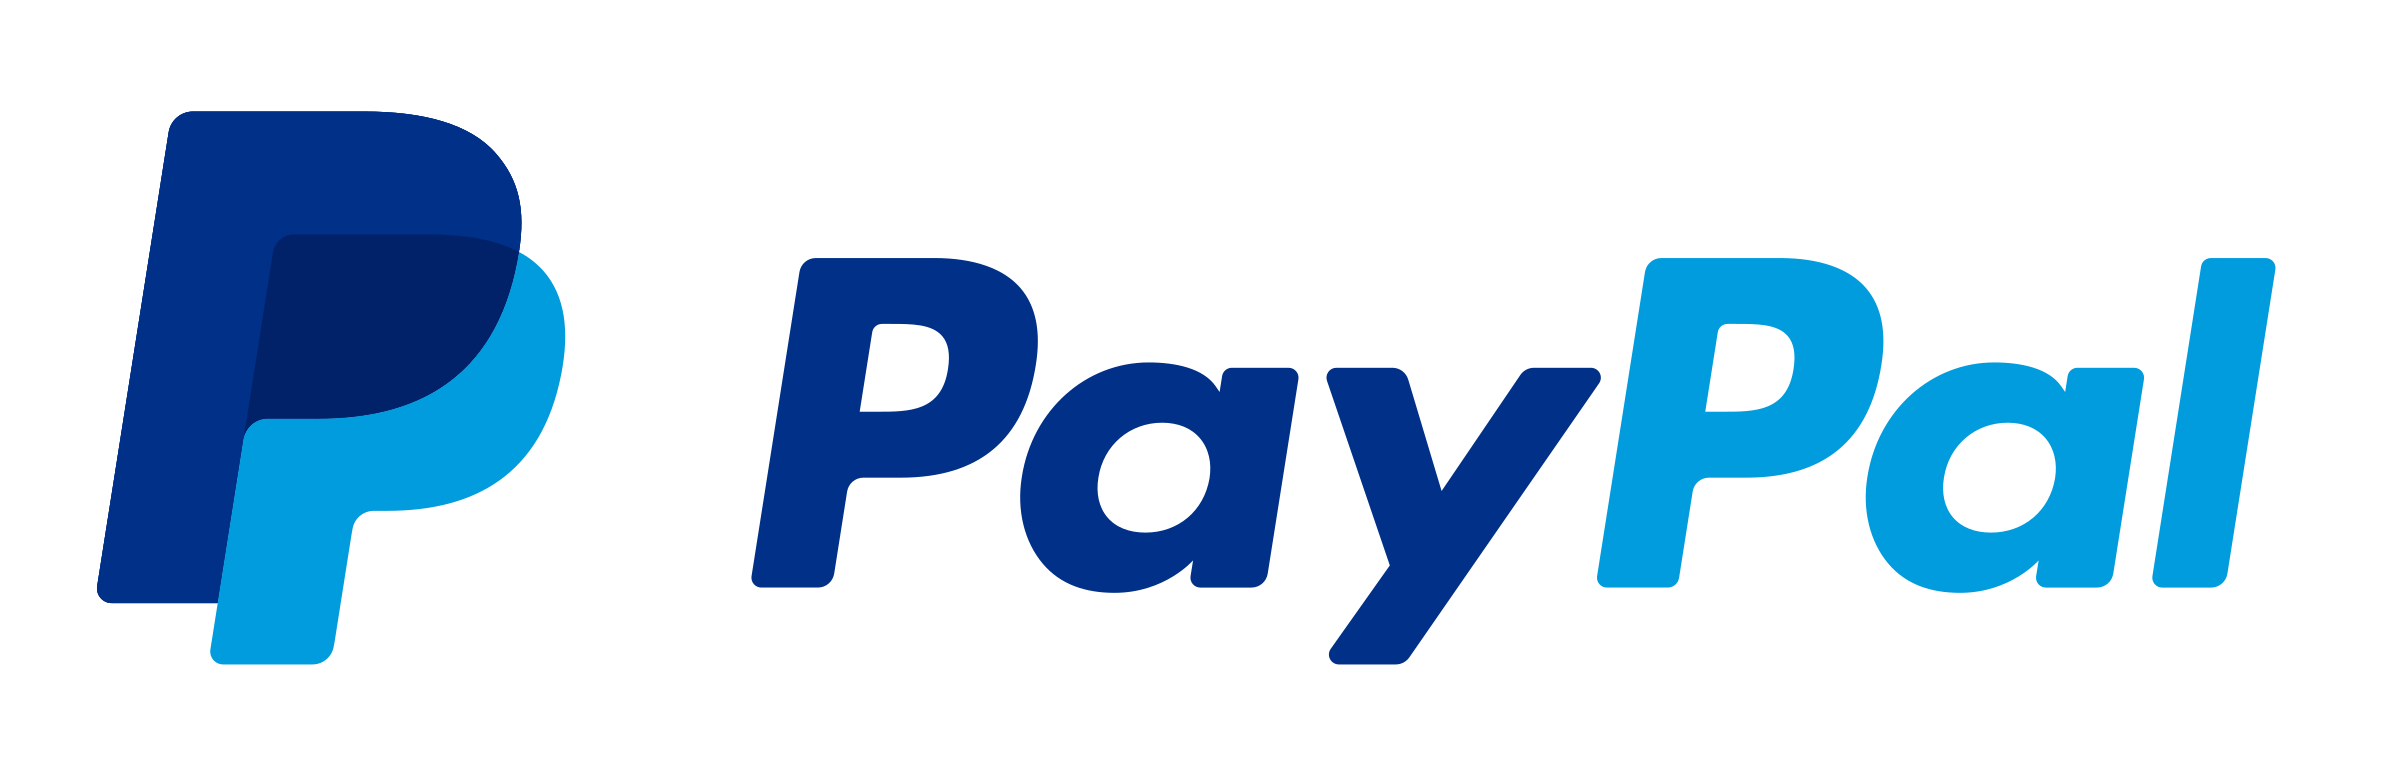 2400x780 Paypal Paypal Logo Icon Vector Png Free Download